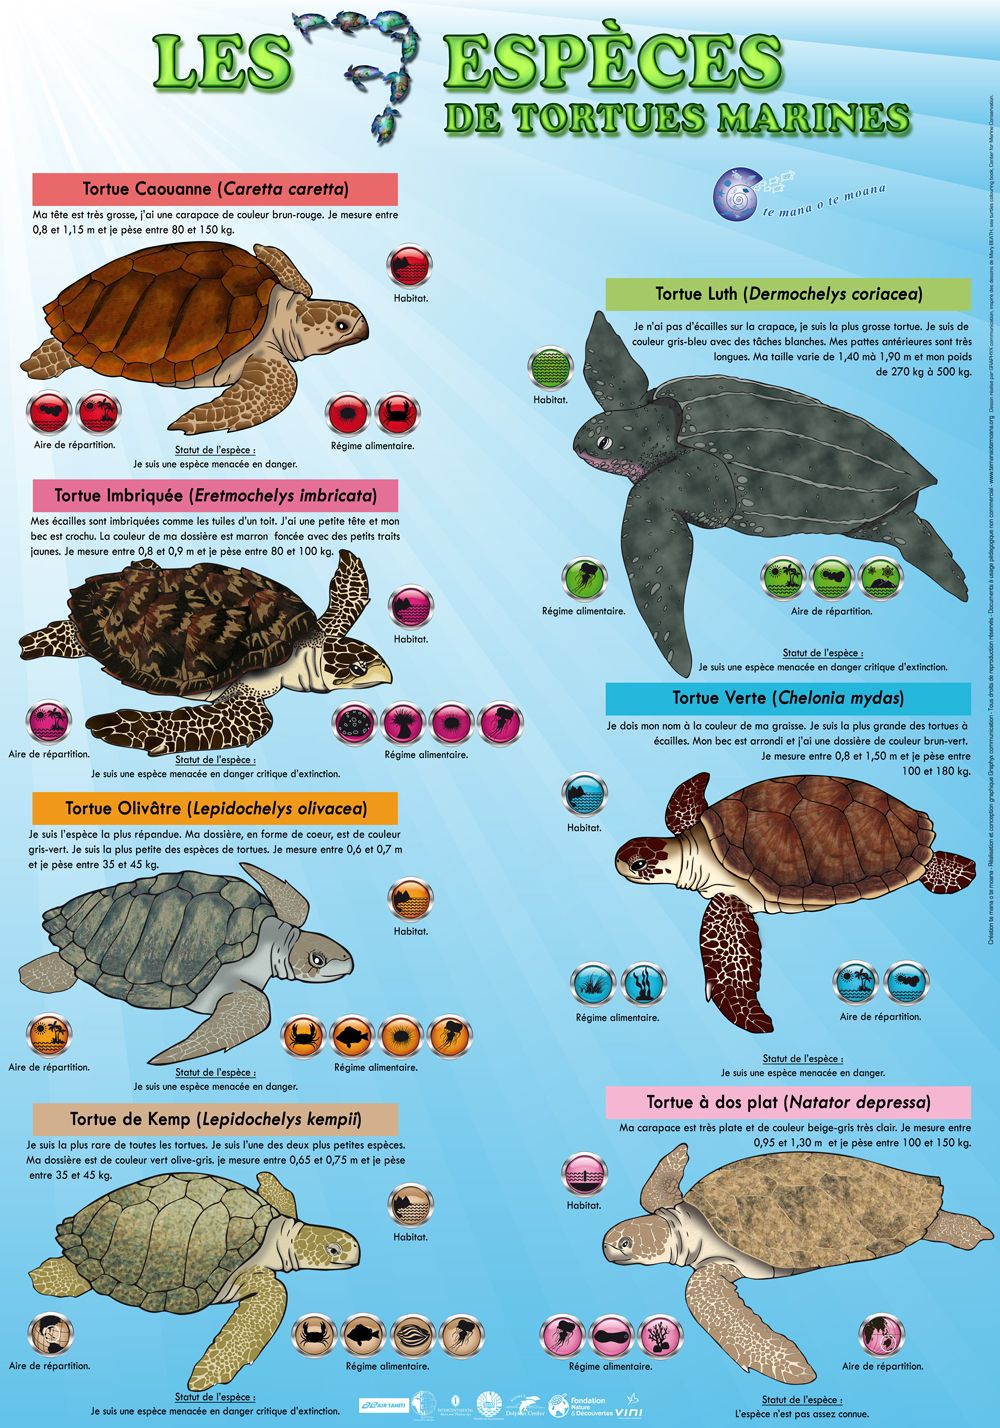 7 Especes De Tortues Marines